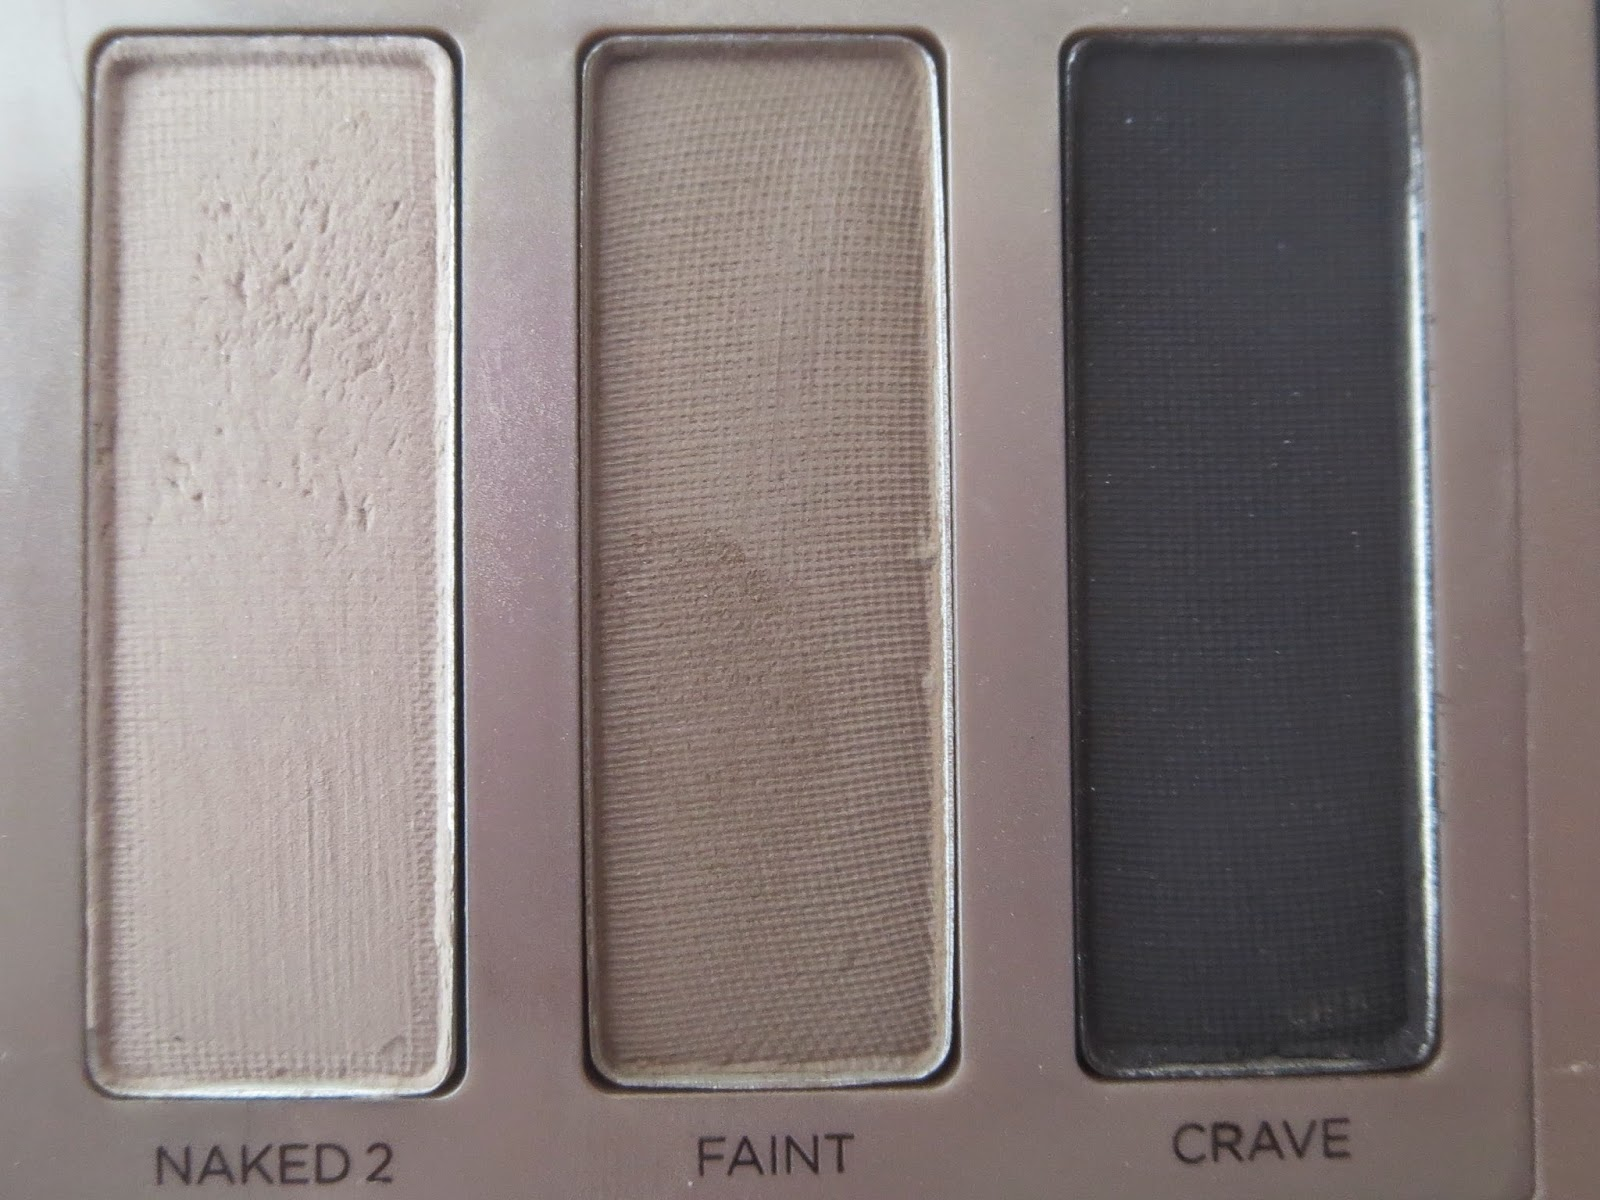 a picture of Urban Decay Naked Basics ; Naked 2, Faint, Crave